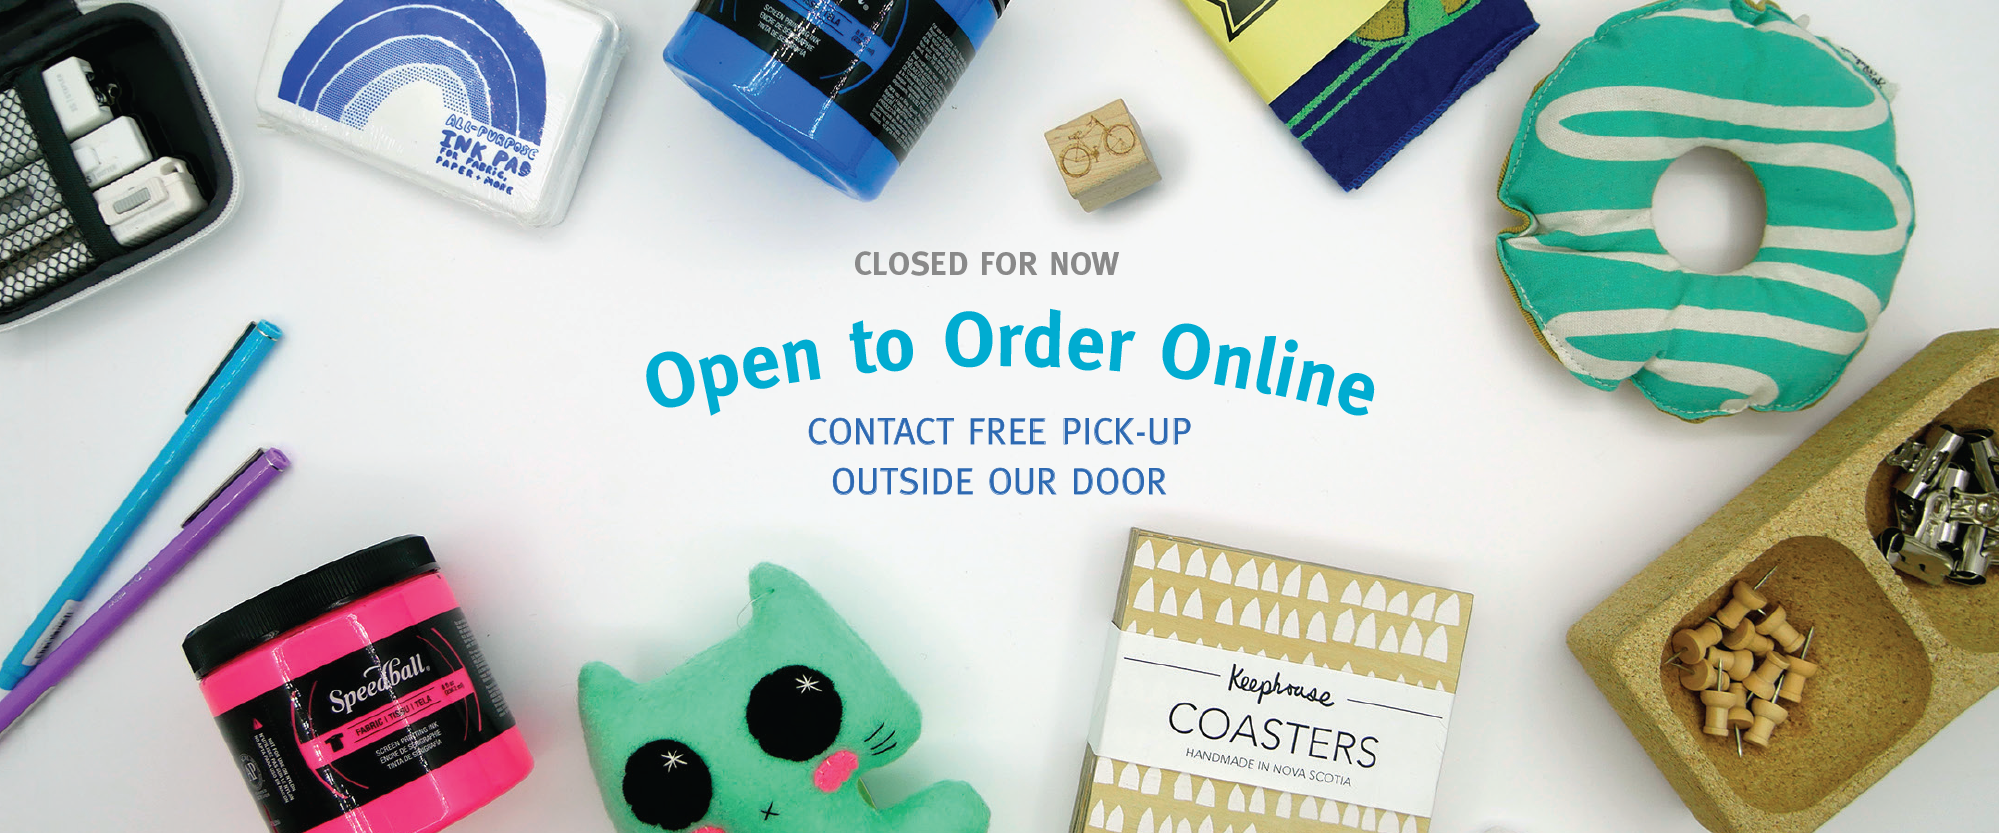 Order online for contact free pickup